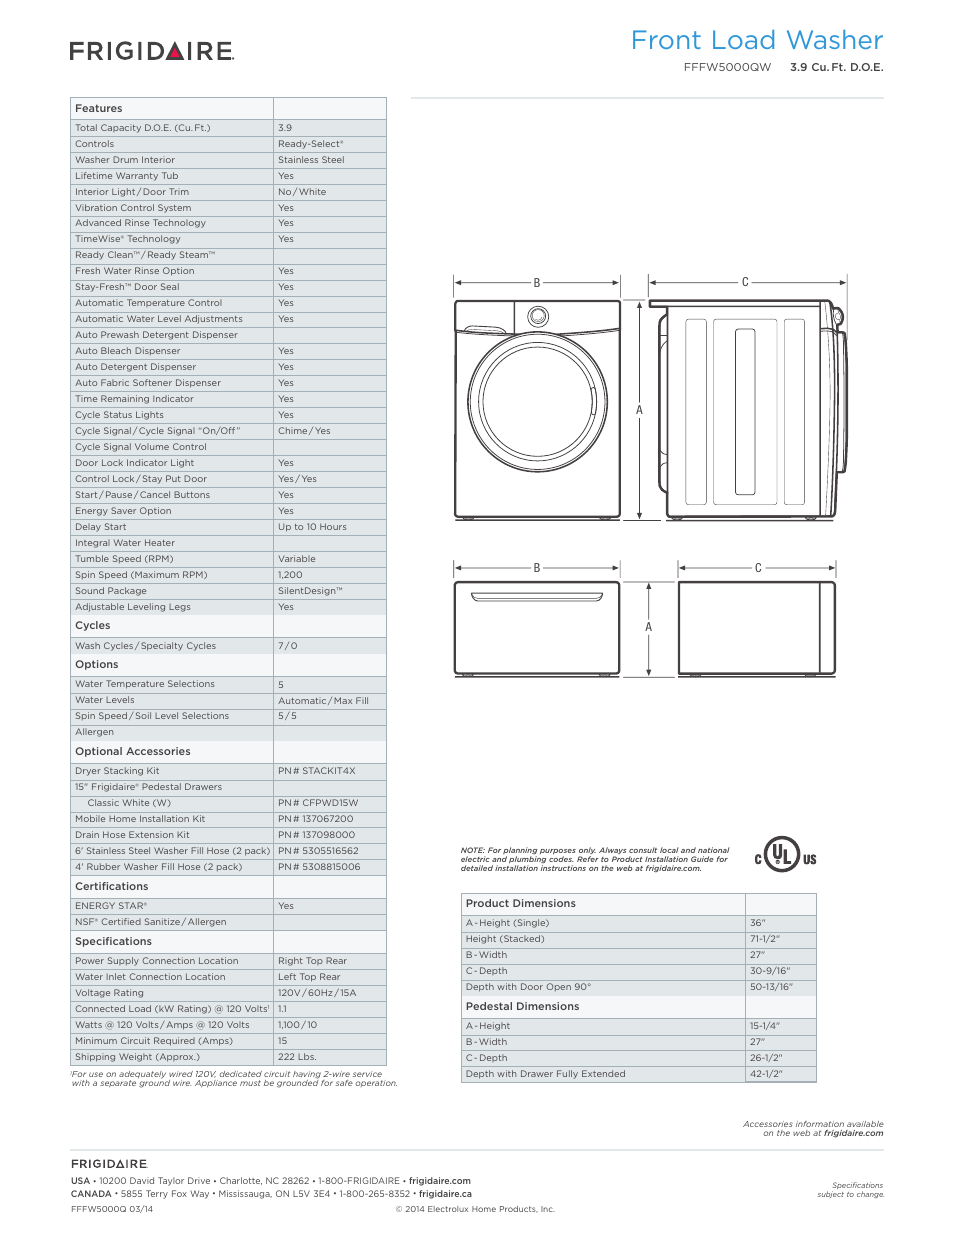 Front Load Washer Frigidaire Fffw5000qw User Manual